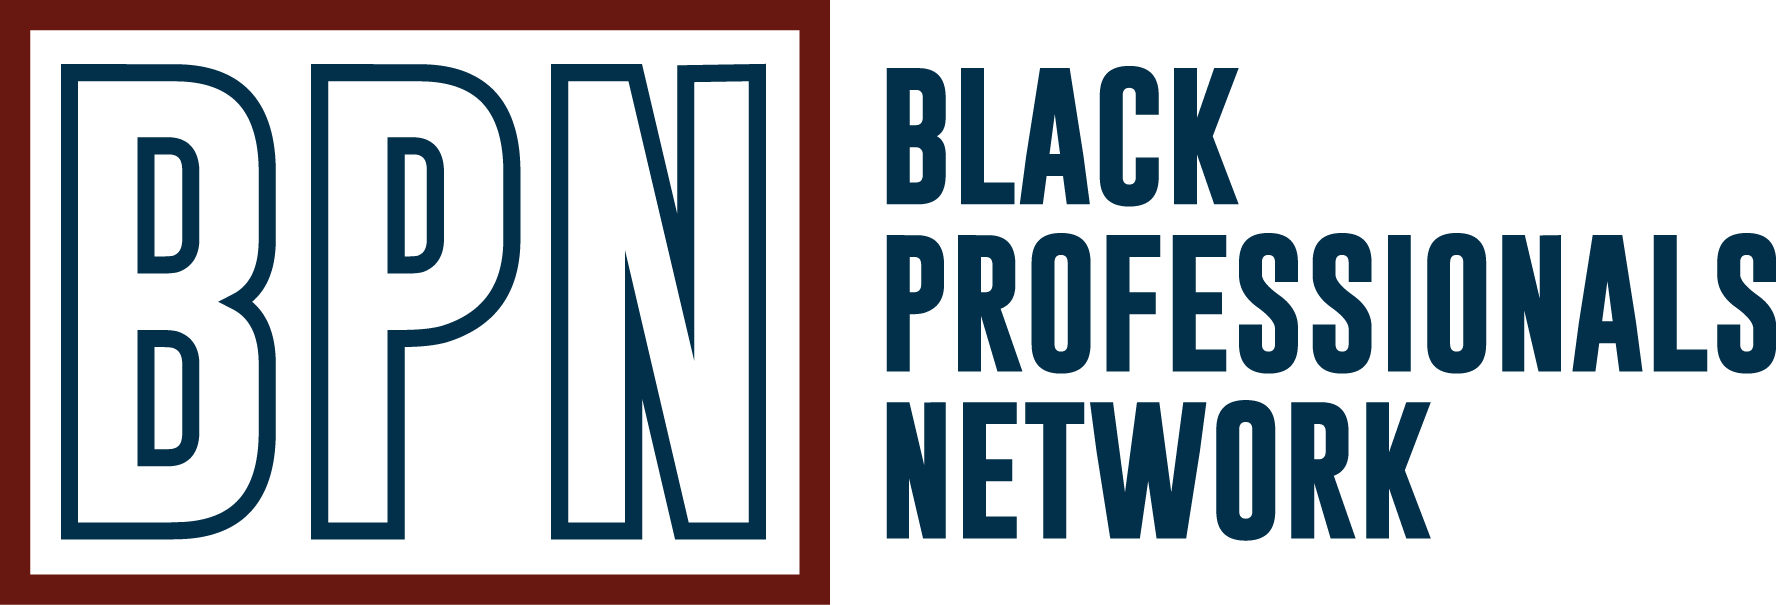 Career Board – Black Professionals Network